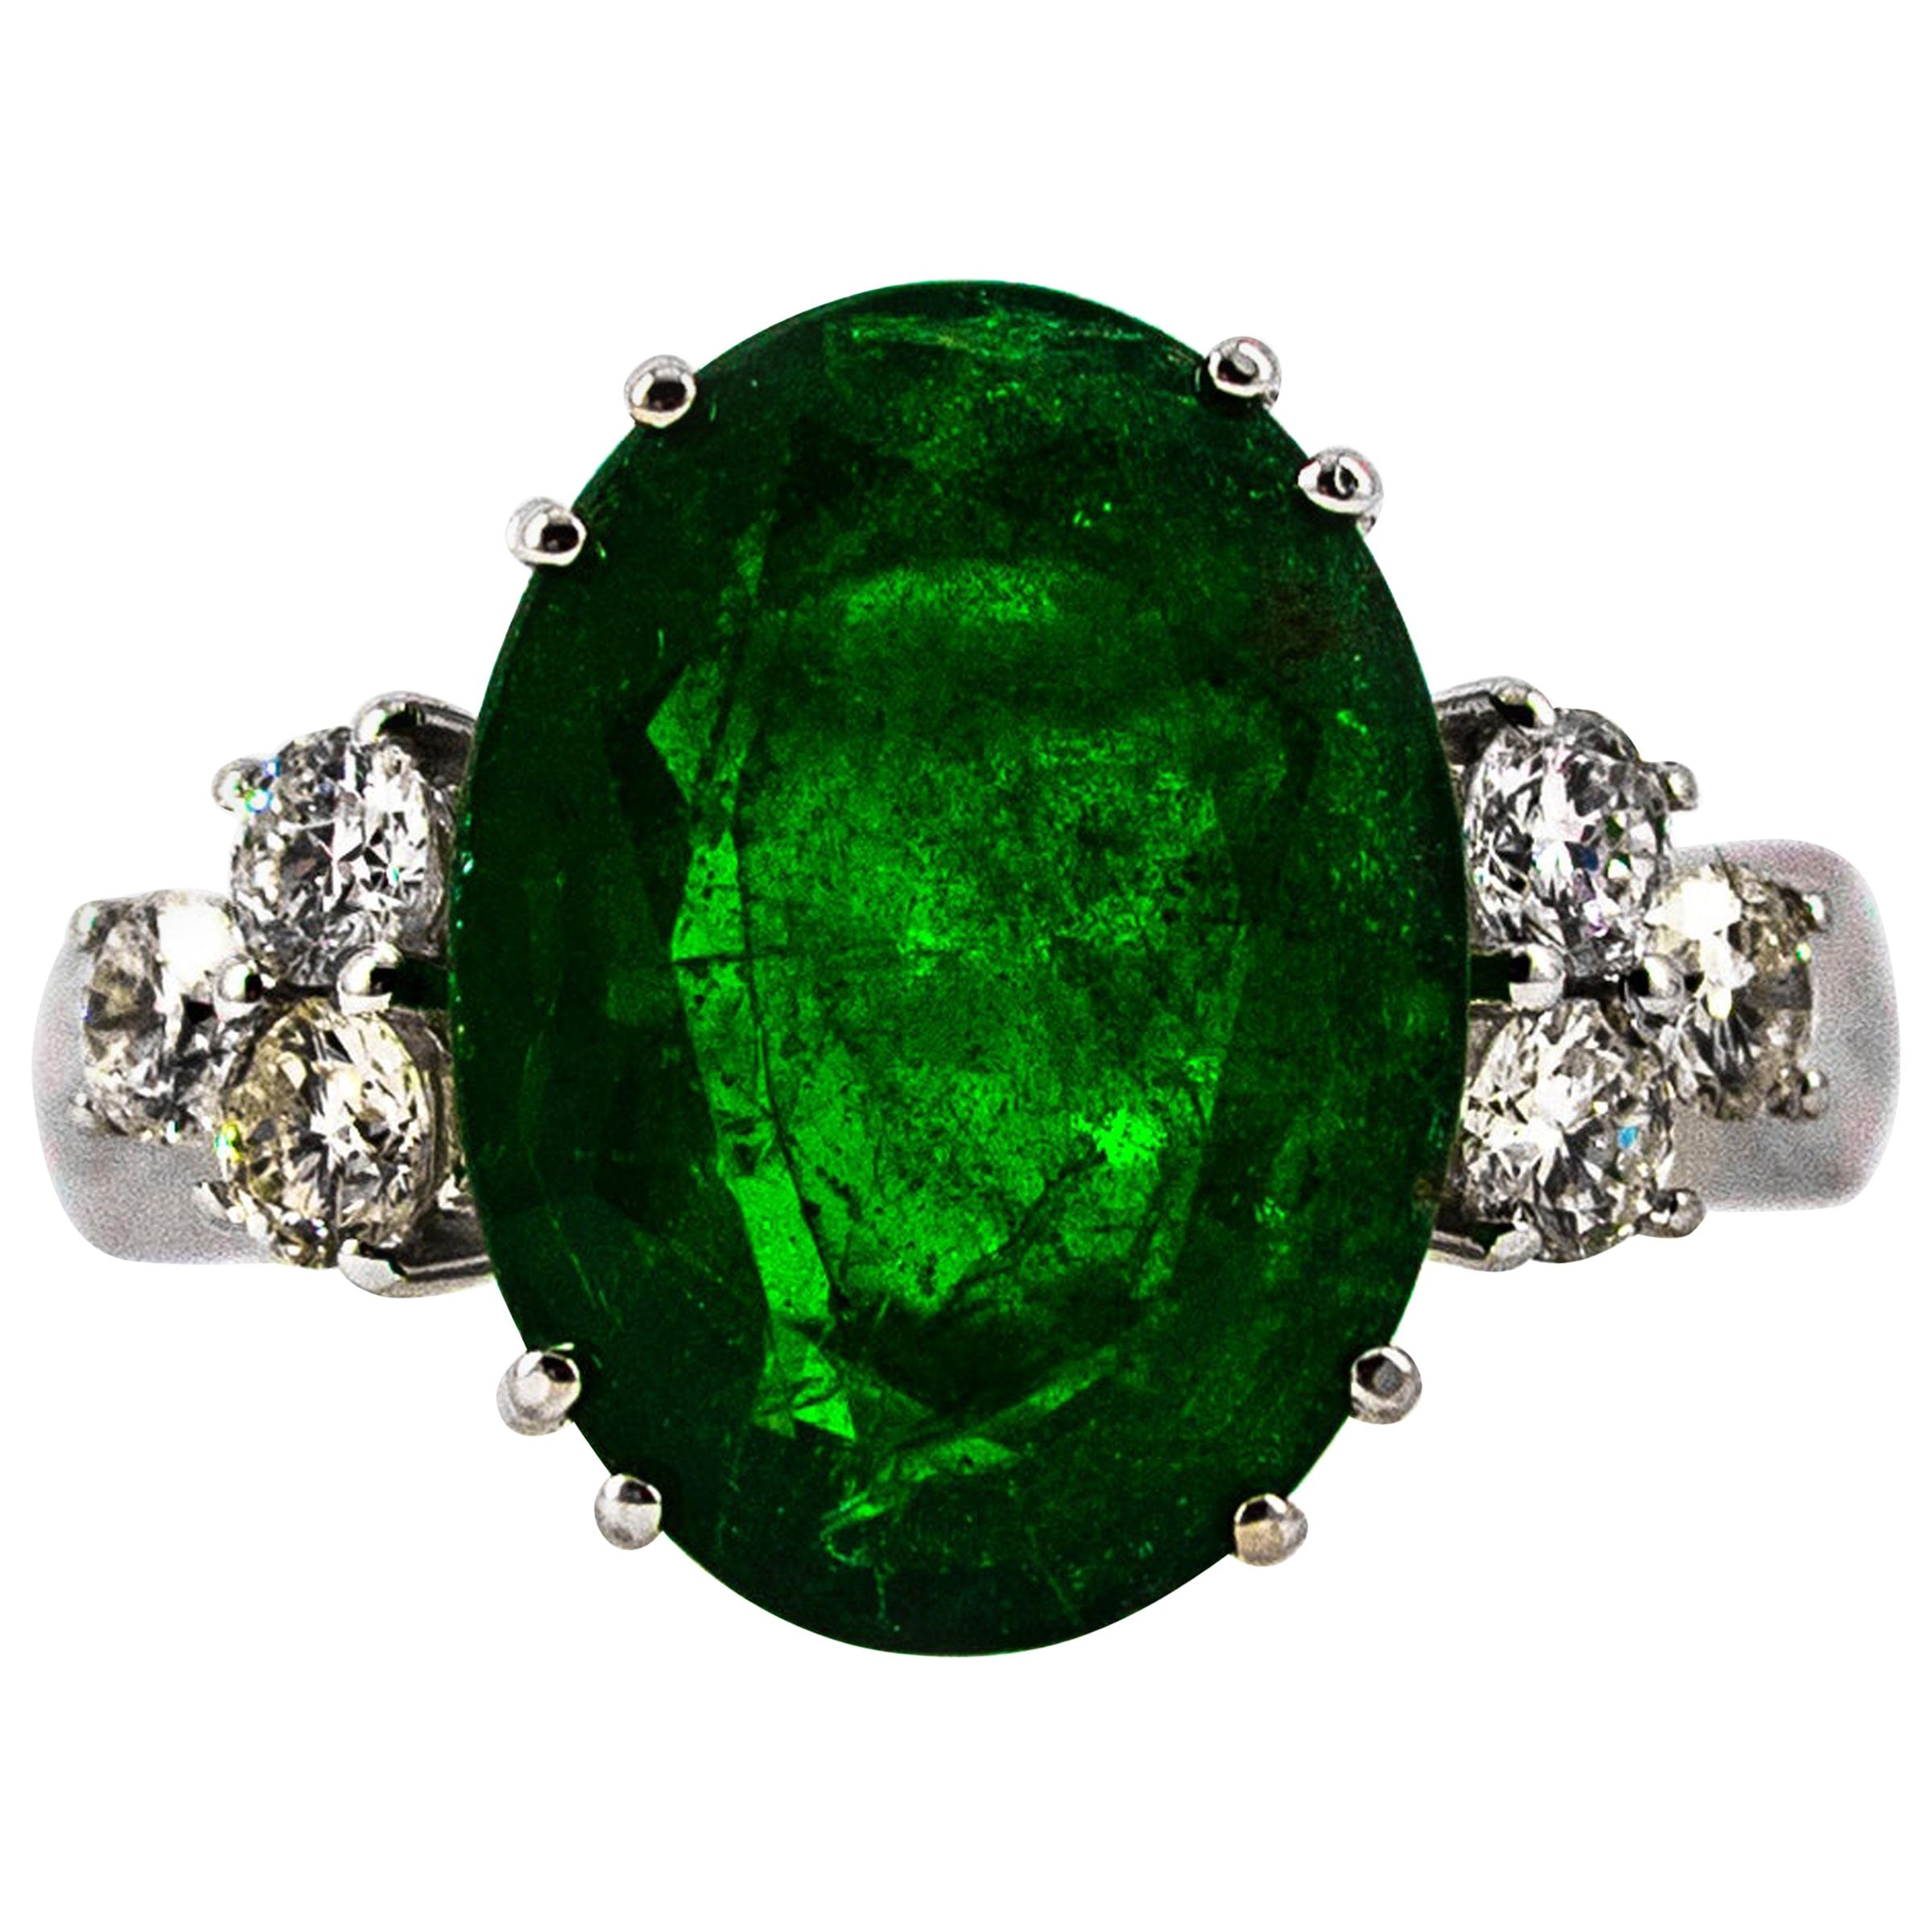 6.42 Carat Emerald 0.60 Carat White Diamond White Gold Cocktail Ring